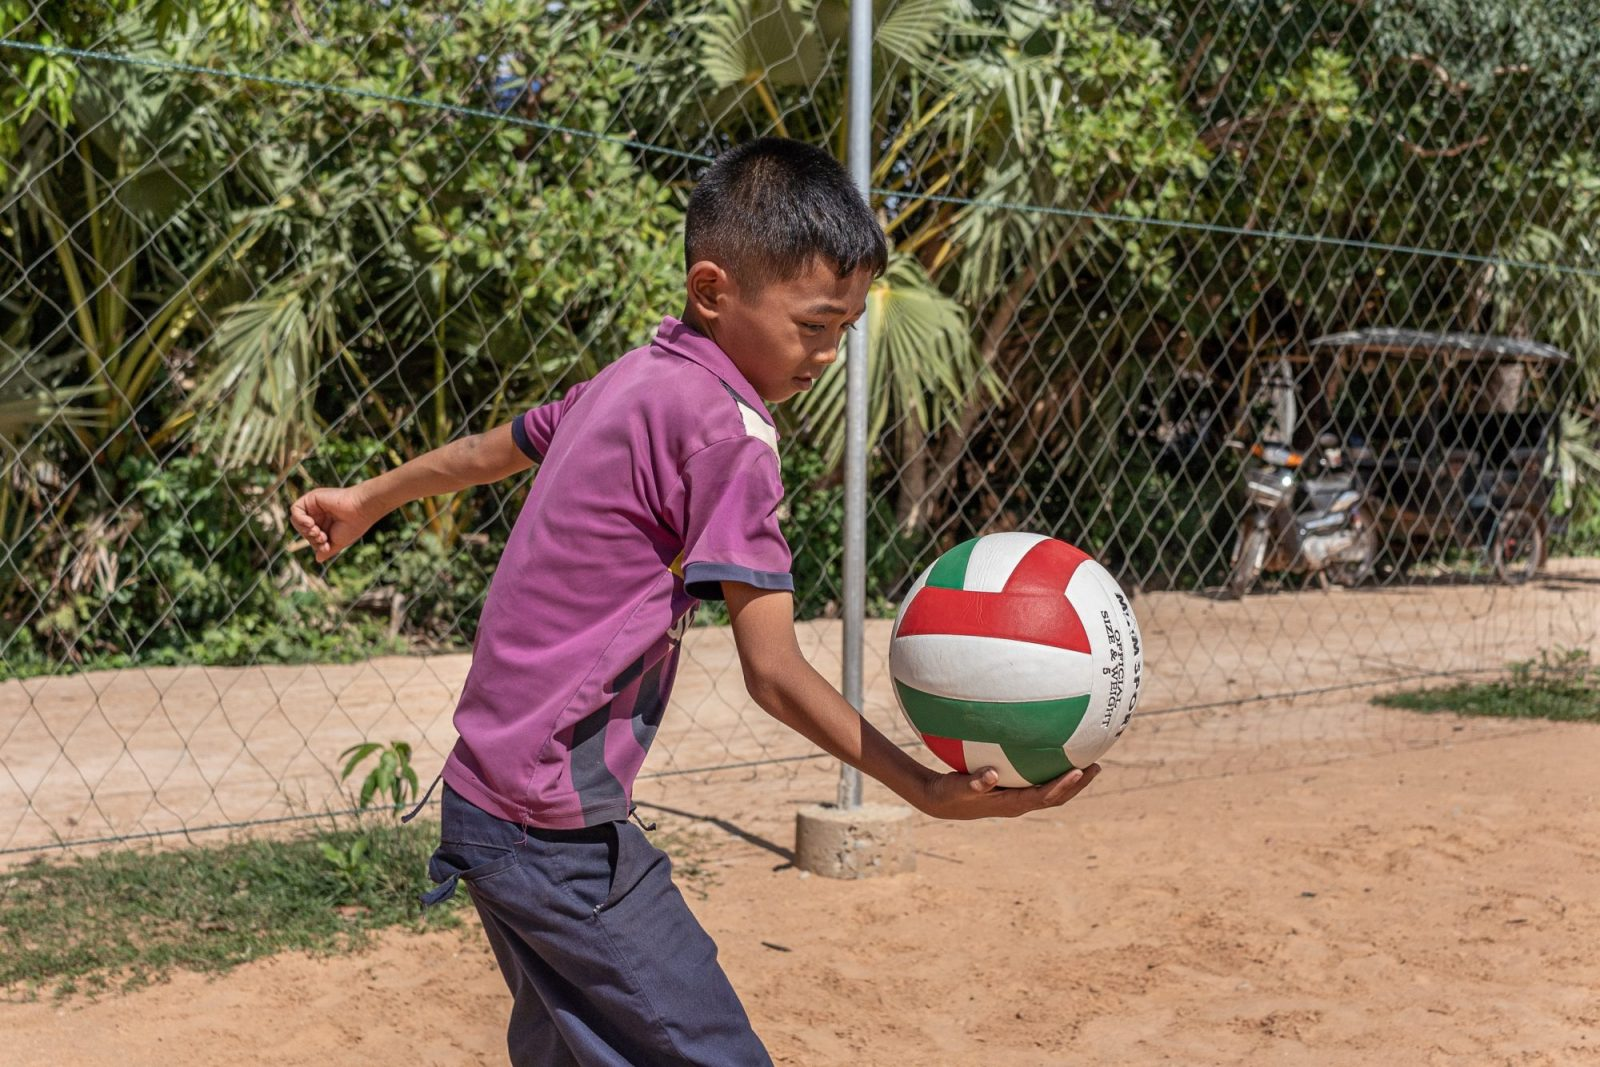 Help provide access to sports to children in Cambodia